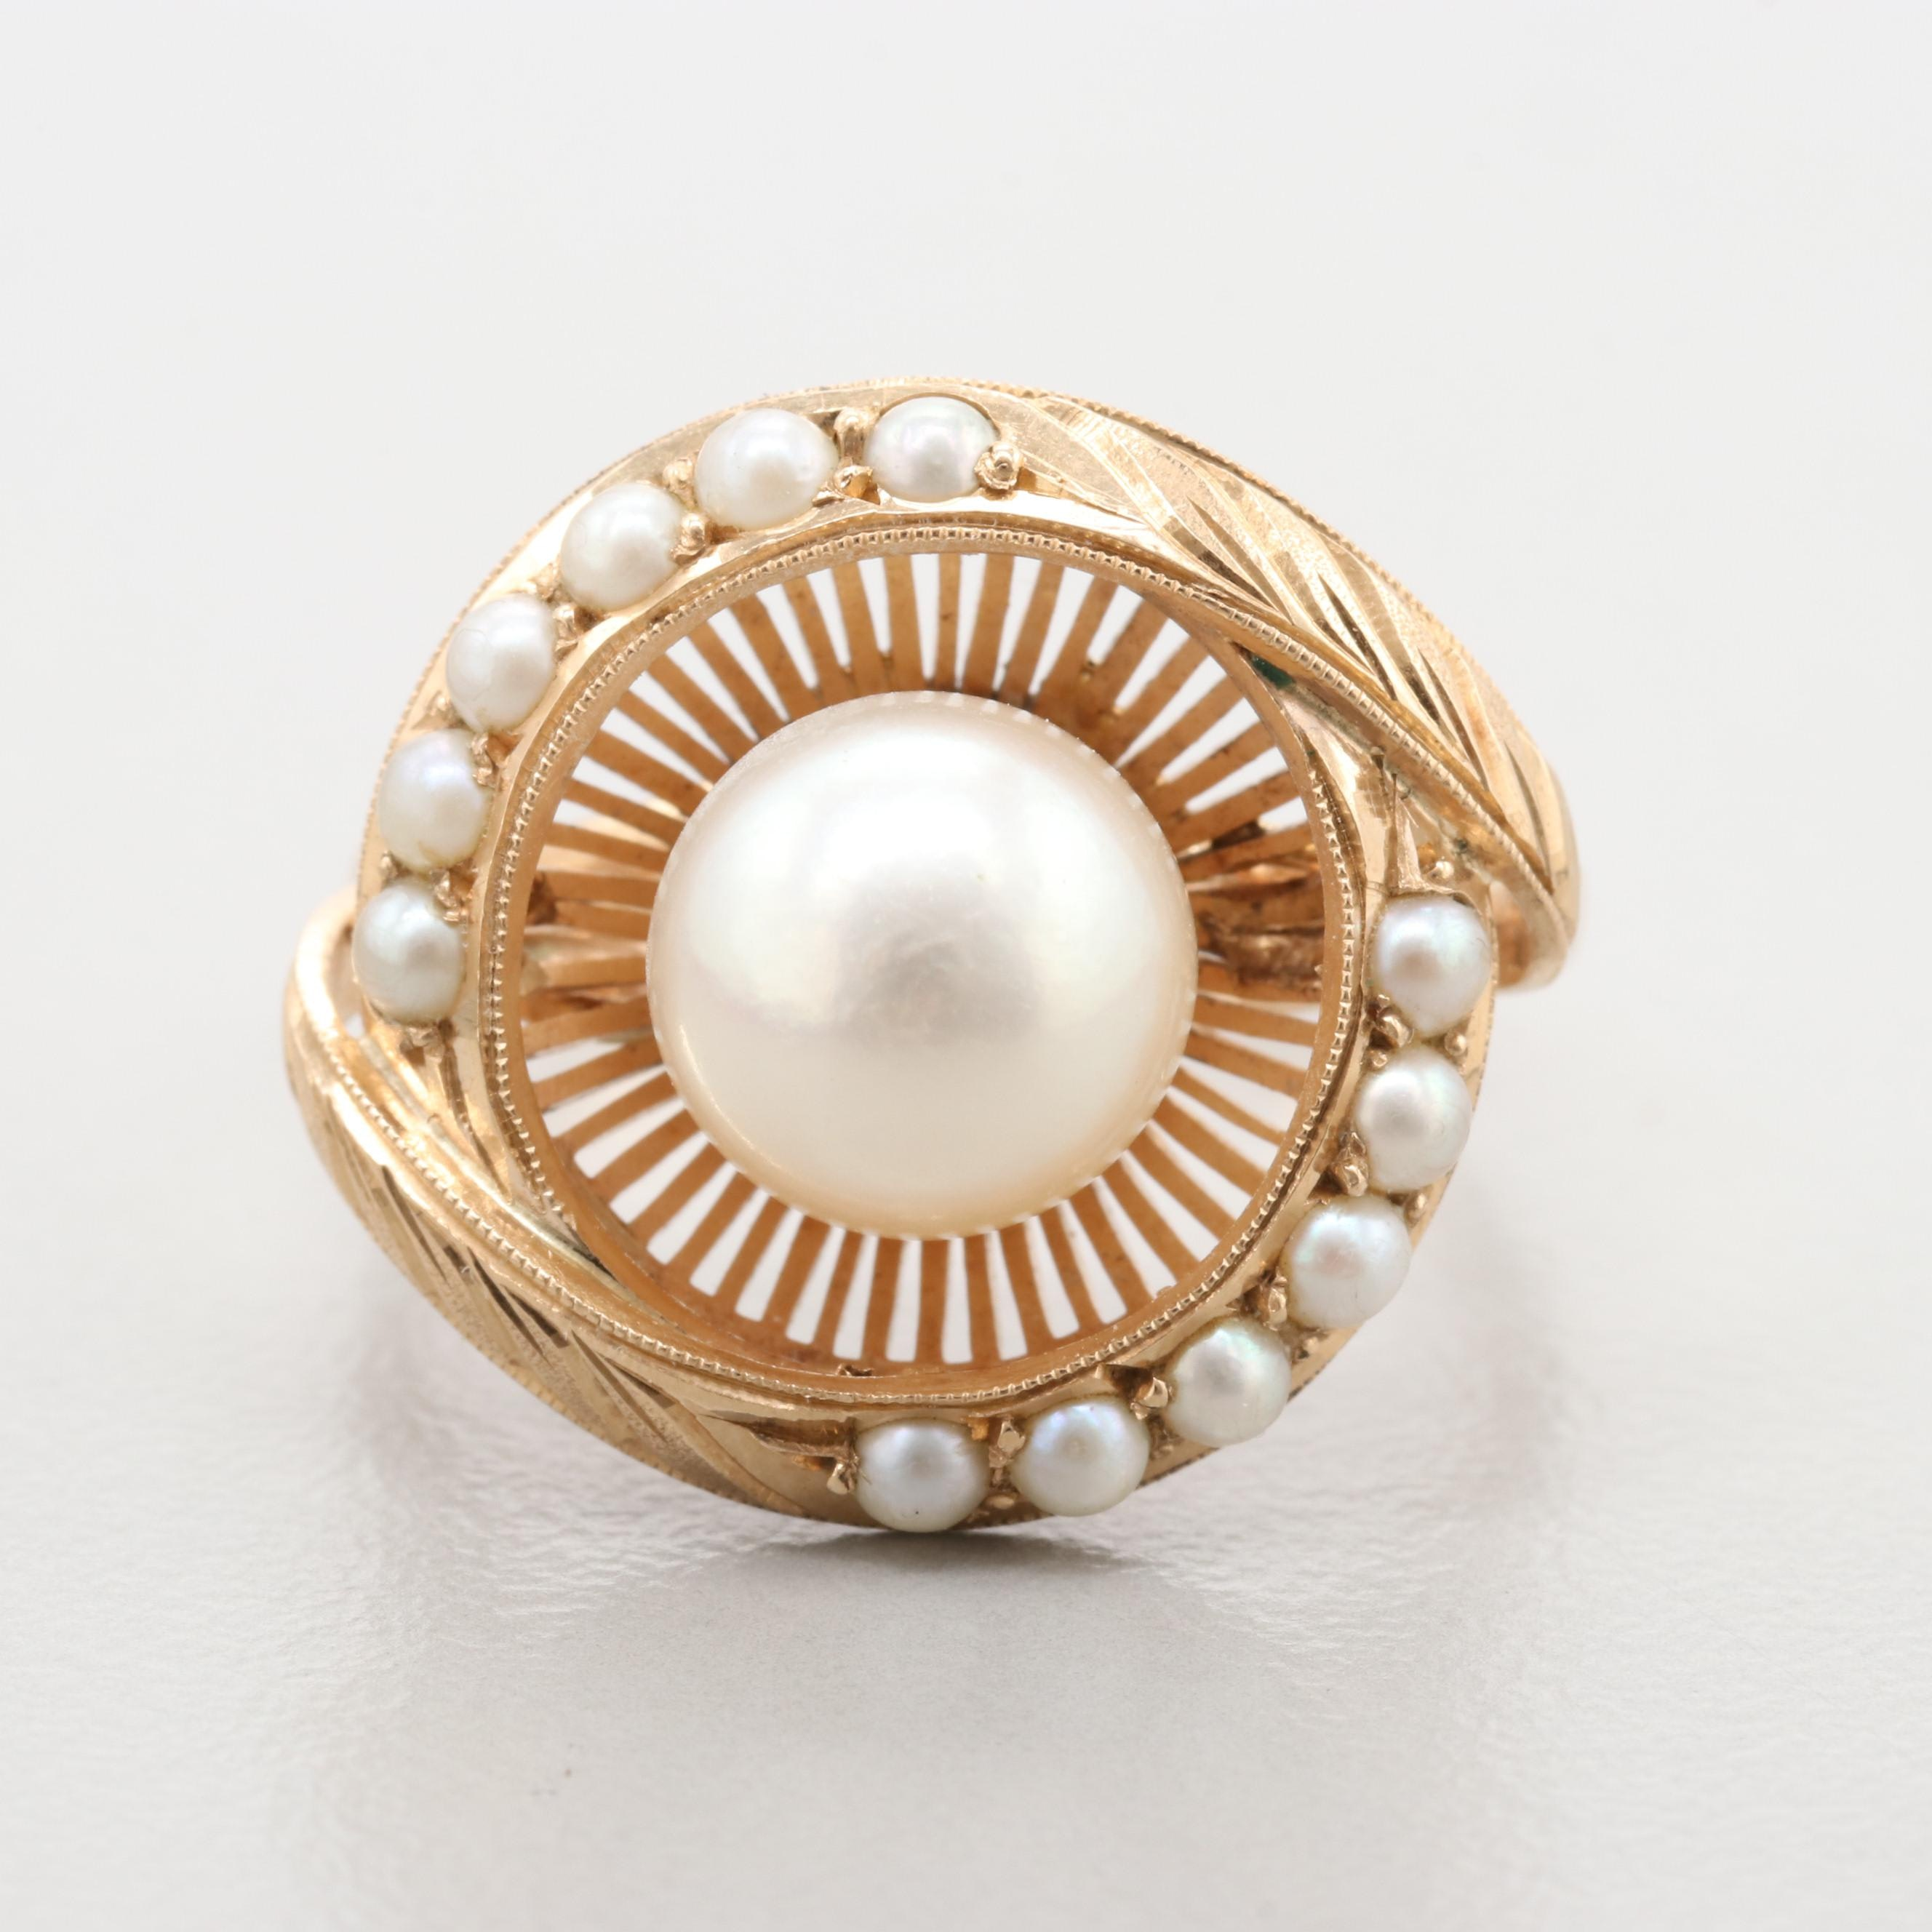 Vintage 14K Rose Gold Cultured Pearl and Seed Pearl Ring